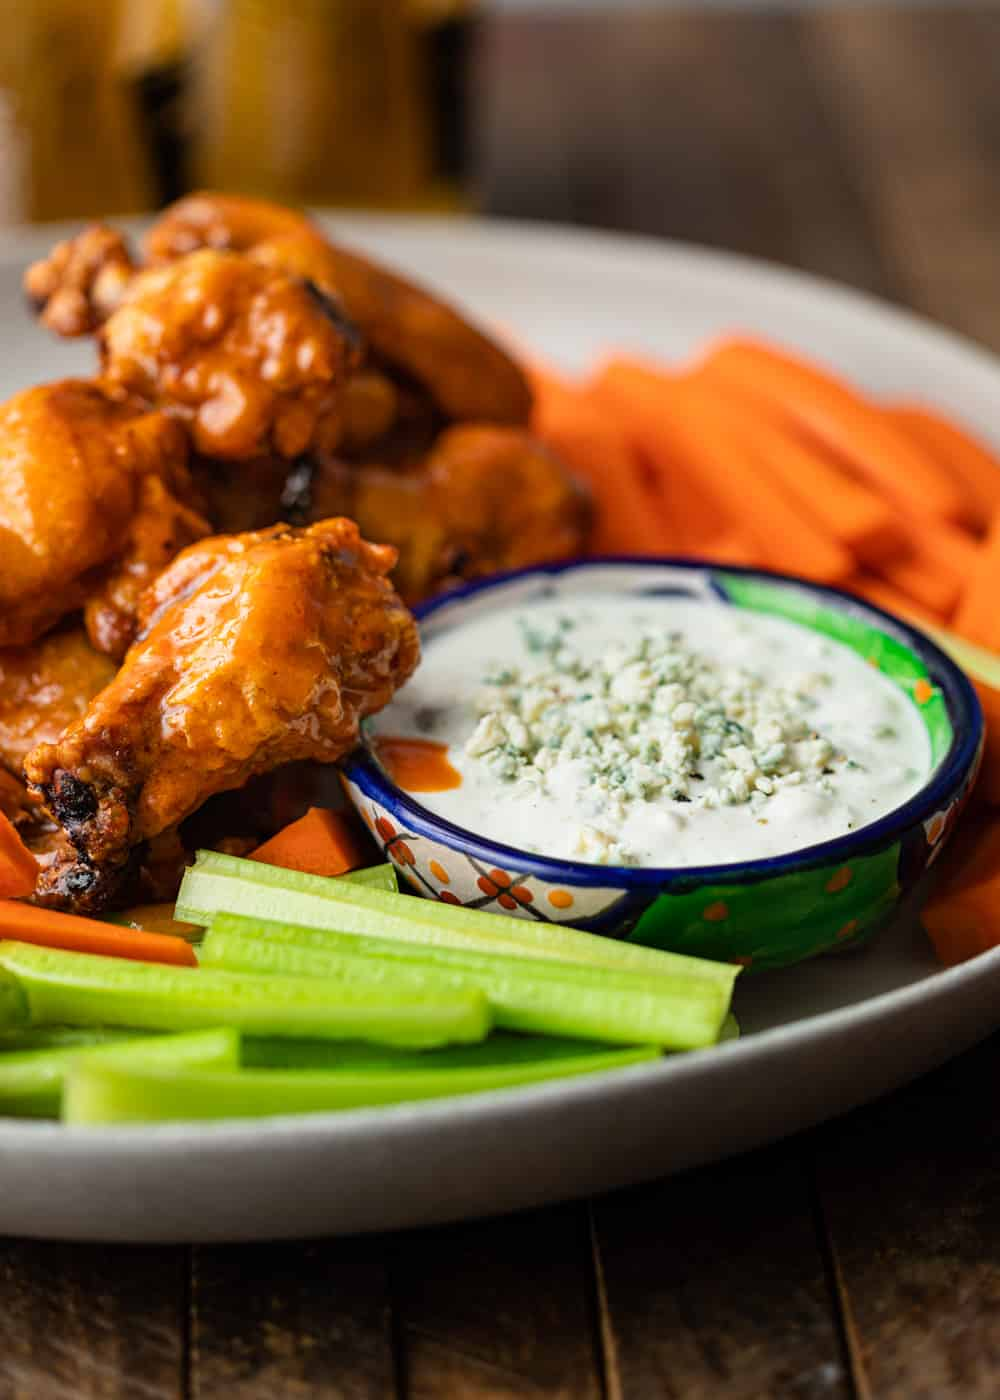 small bowl of blue cheese dip with wings